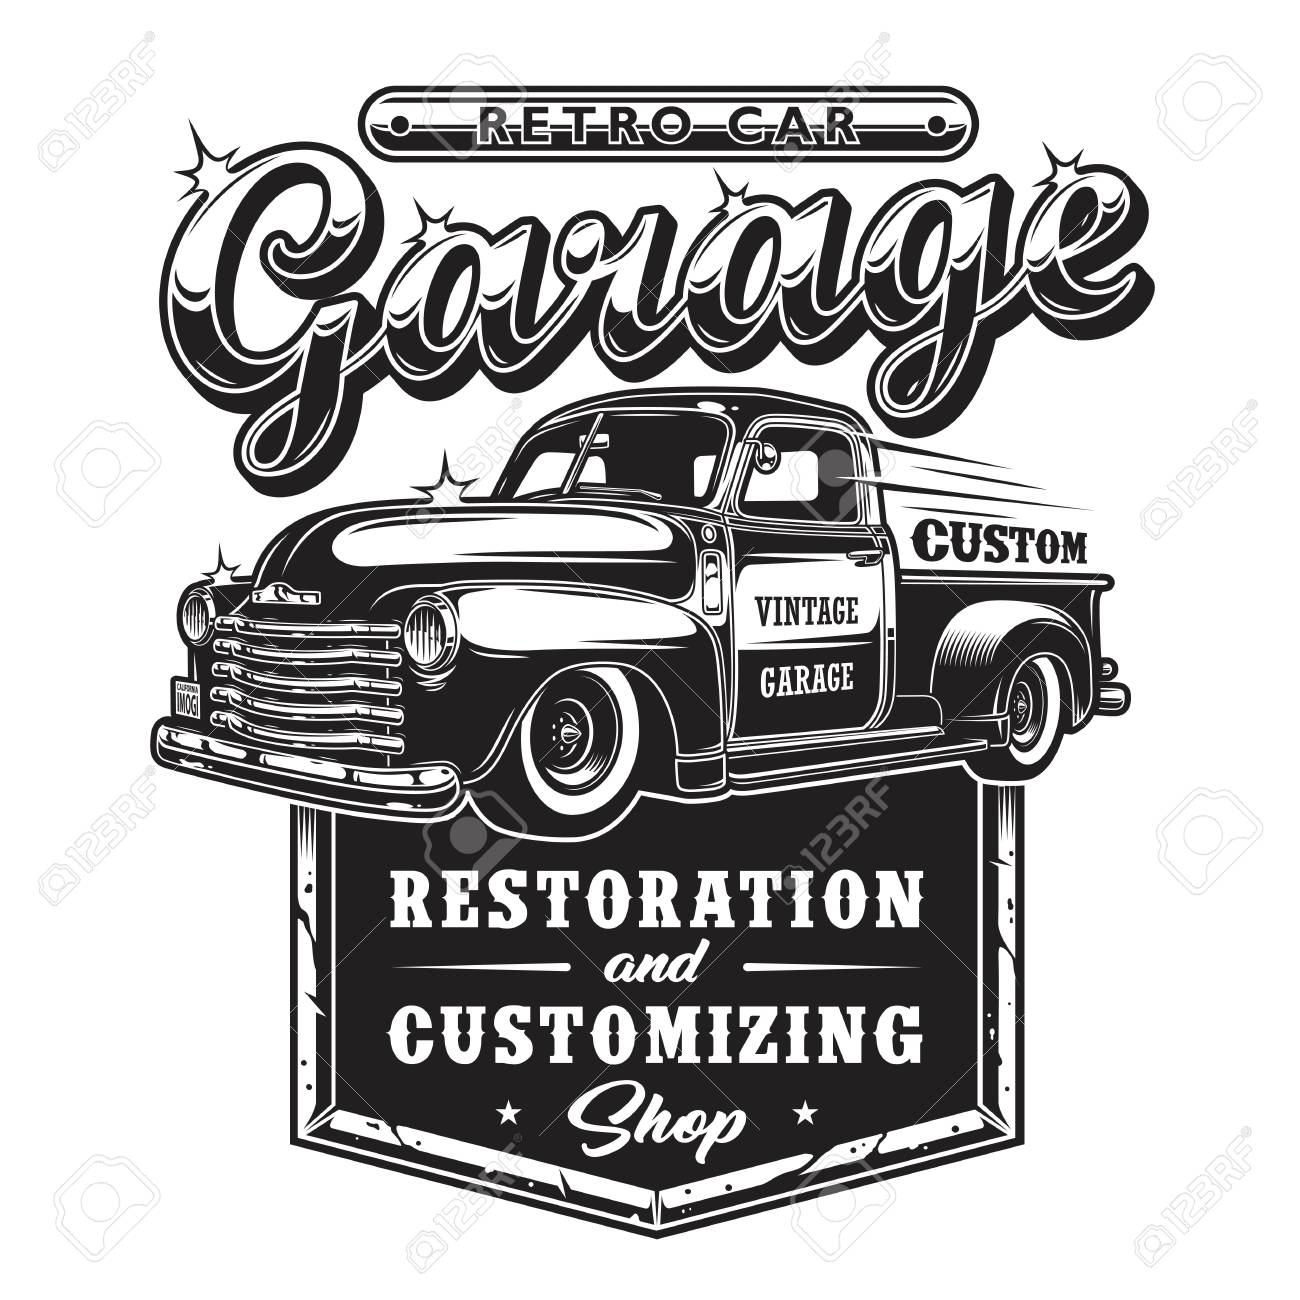 d0211c52a3313 Retro car repair garage sign with retro style truck. Custom restoration..